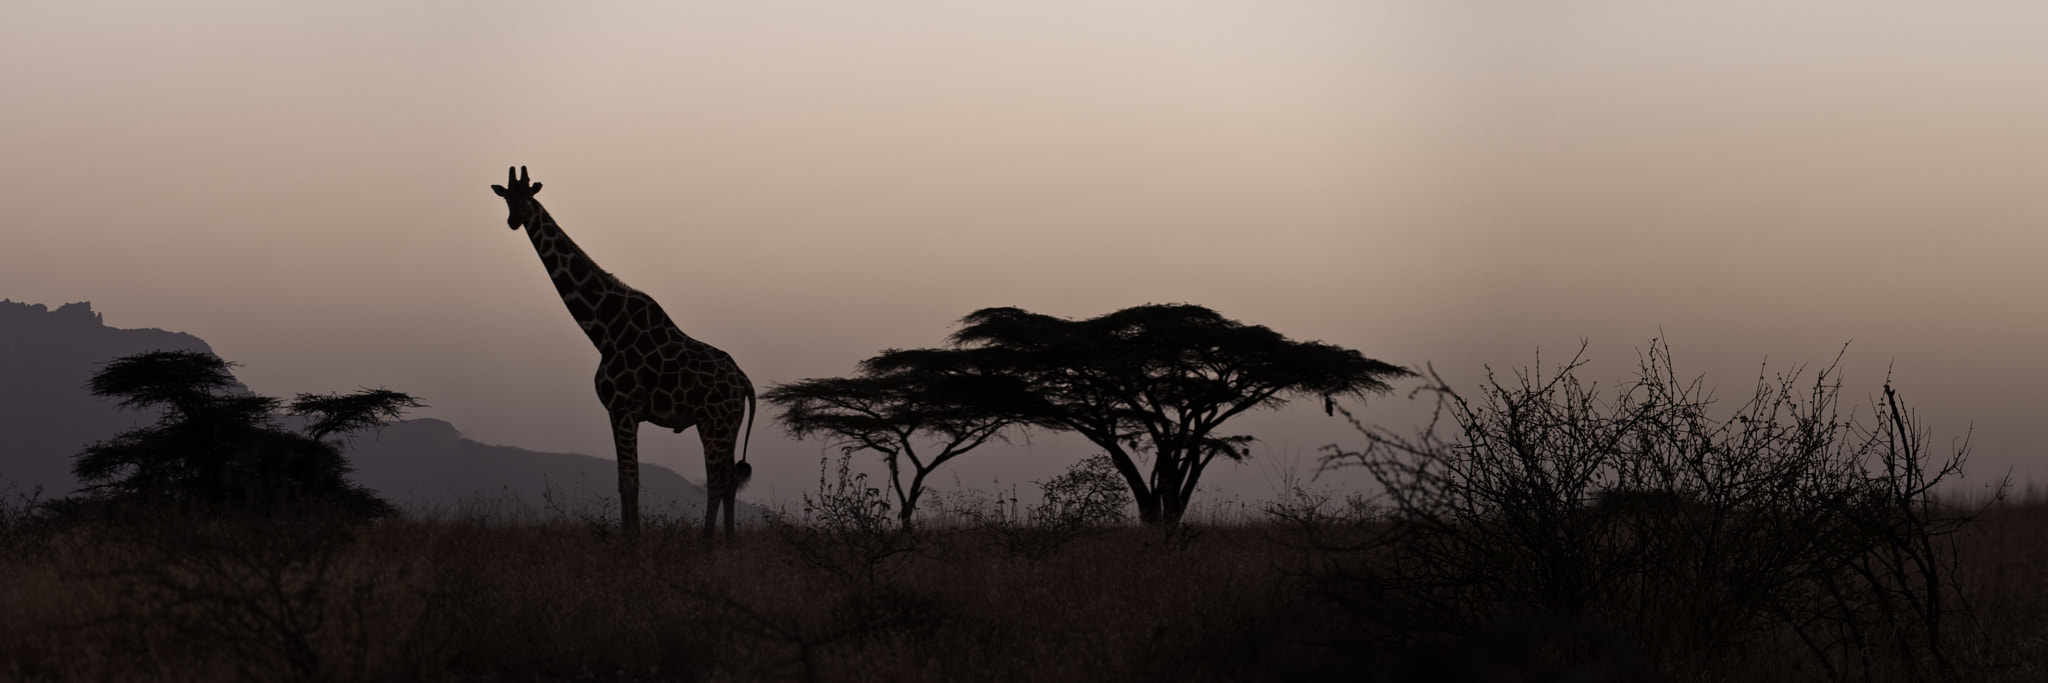 Photograph Shapes of Africa by Antony Blake on 500px